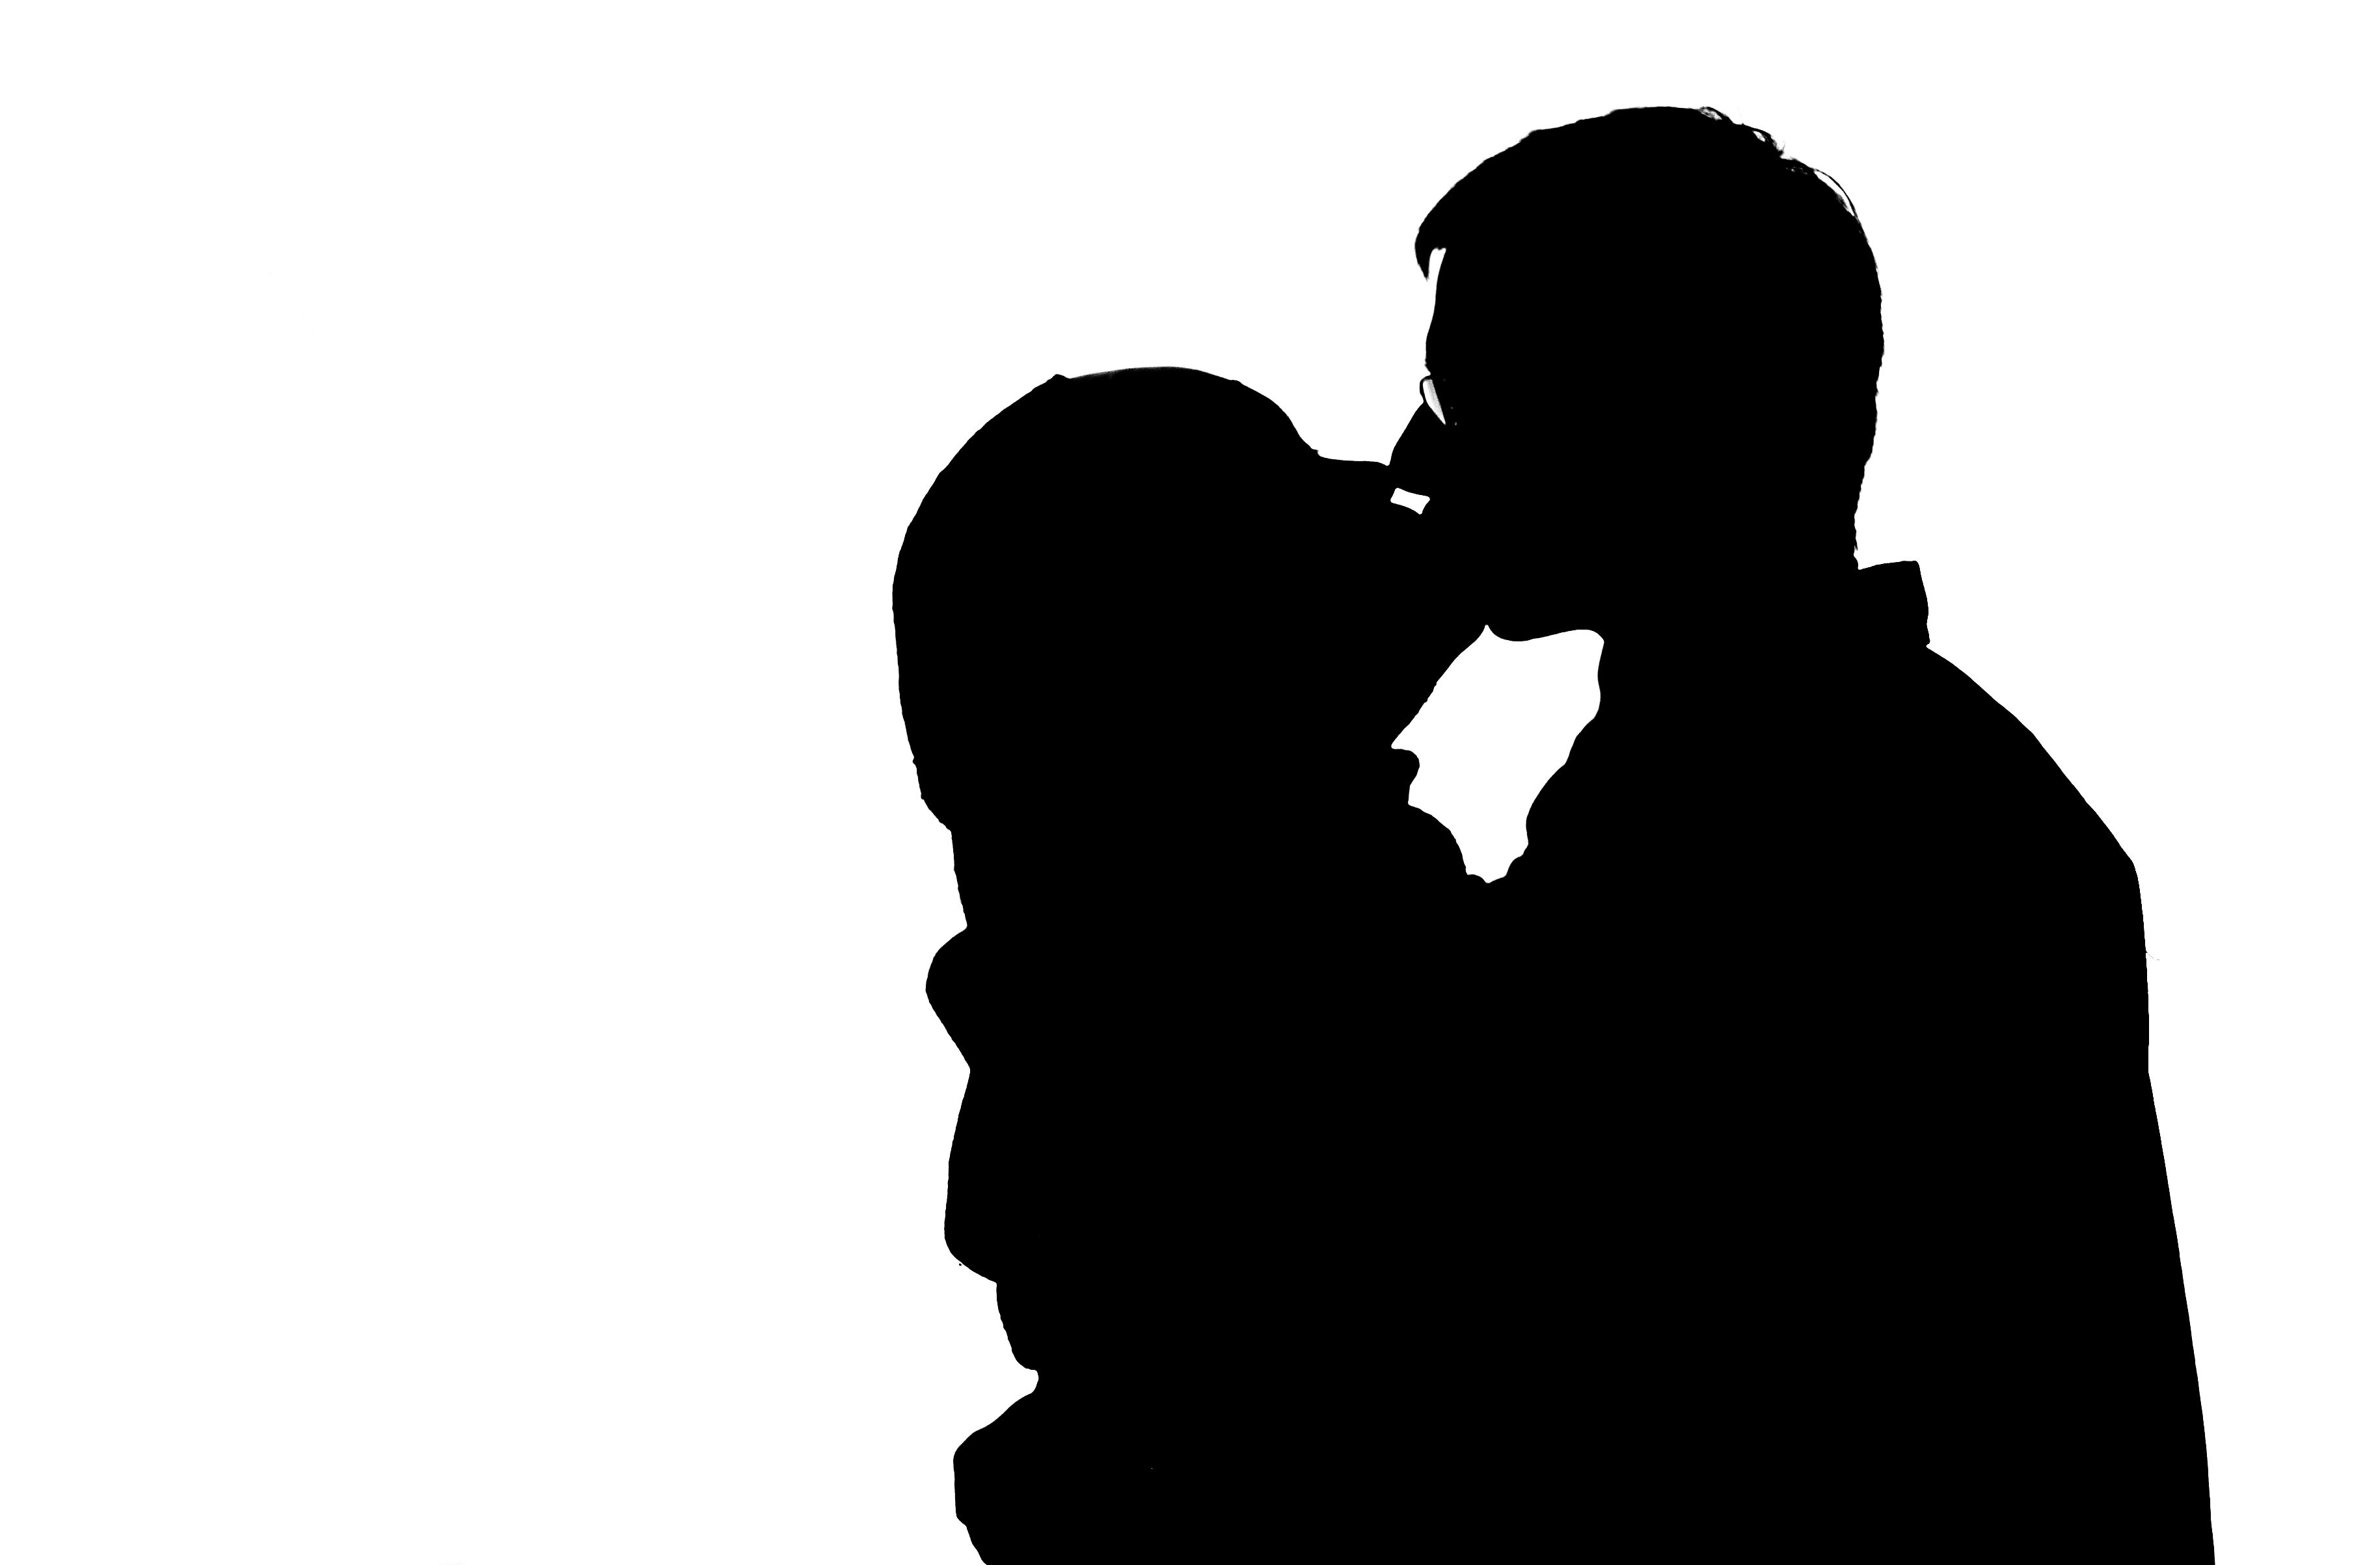 Free People Kissing Silhouette, Download Free Clip Art, Free.